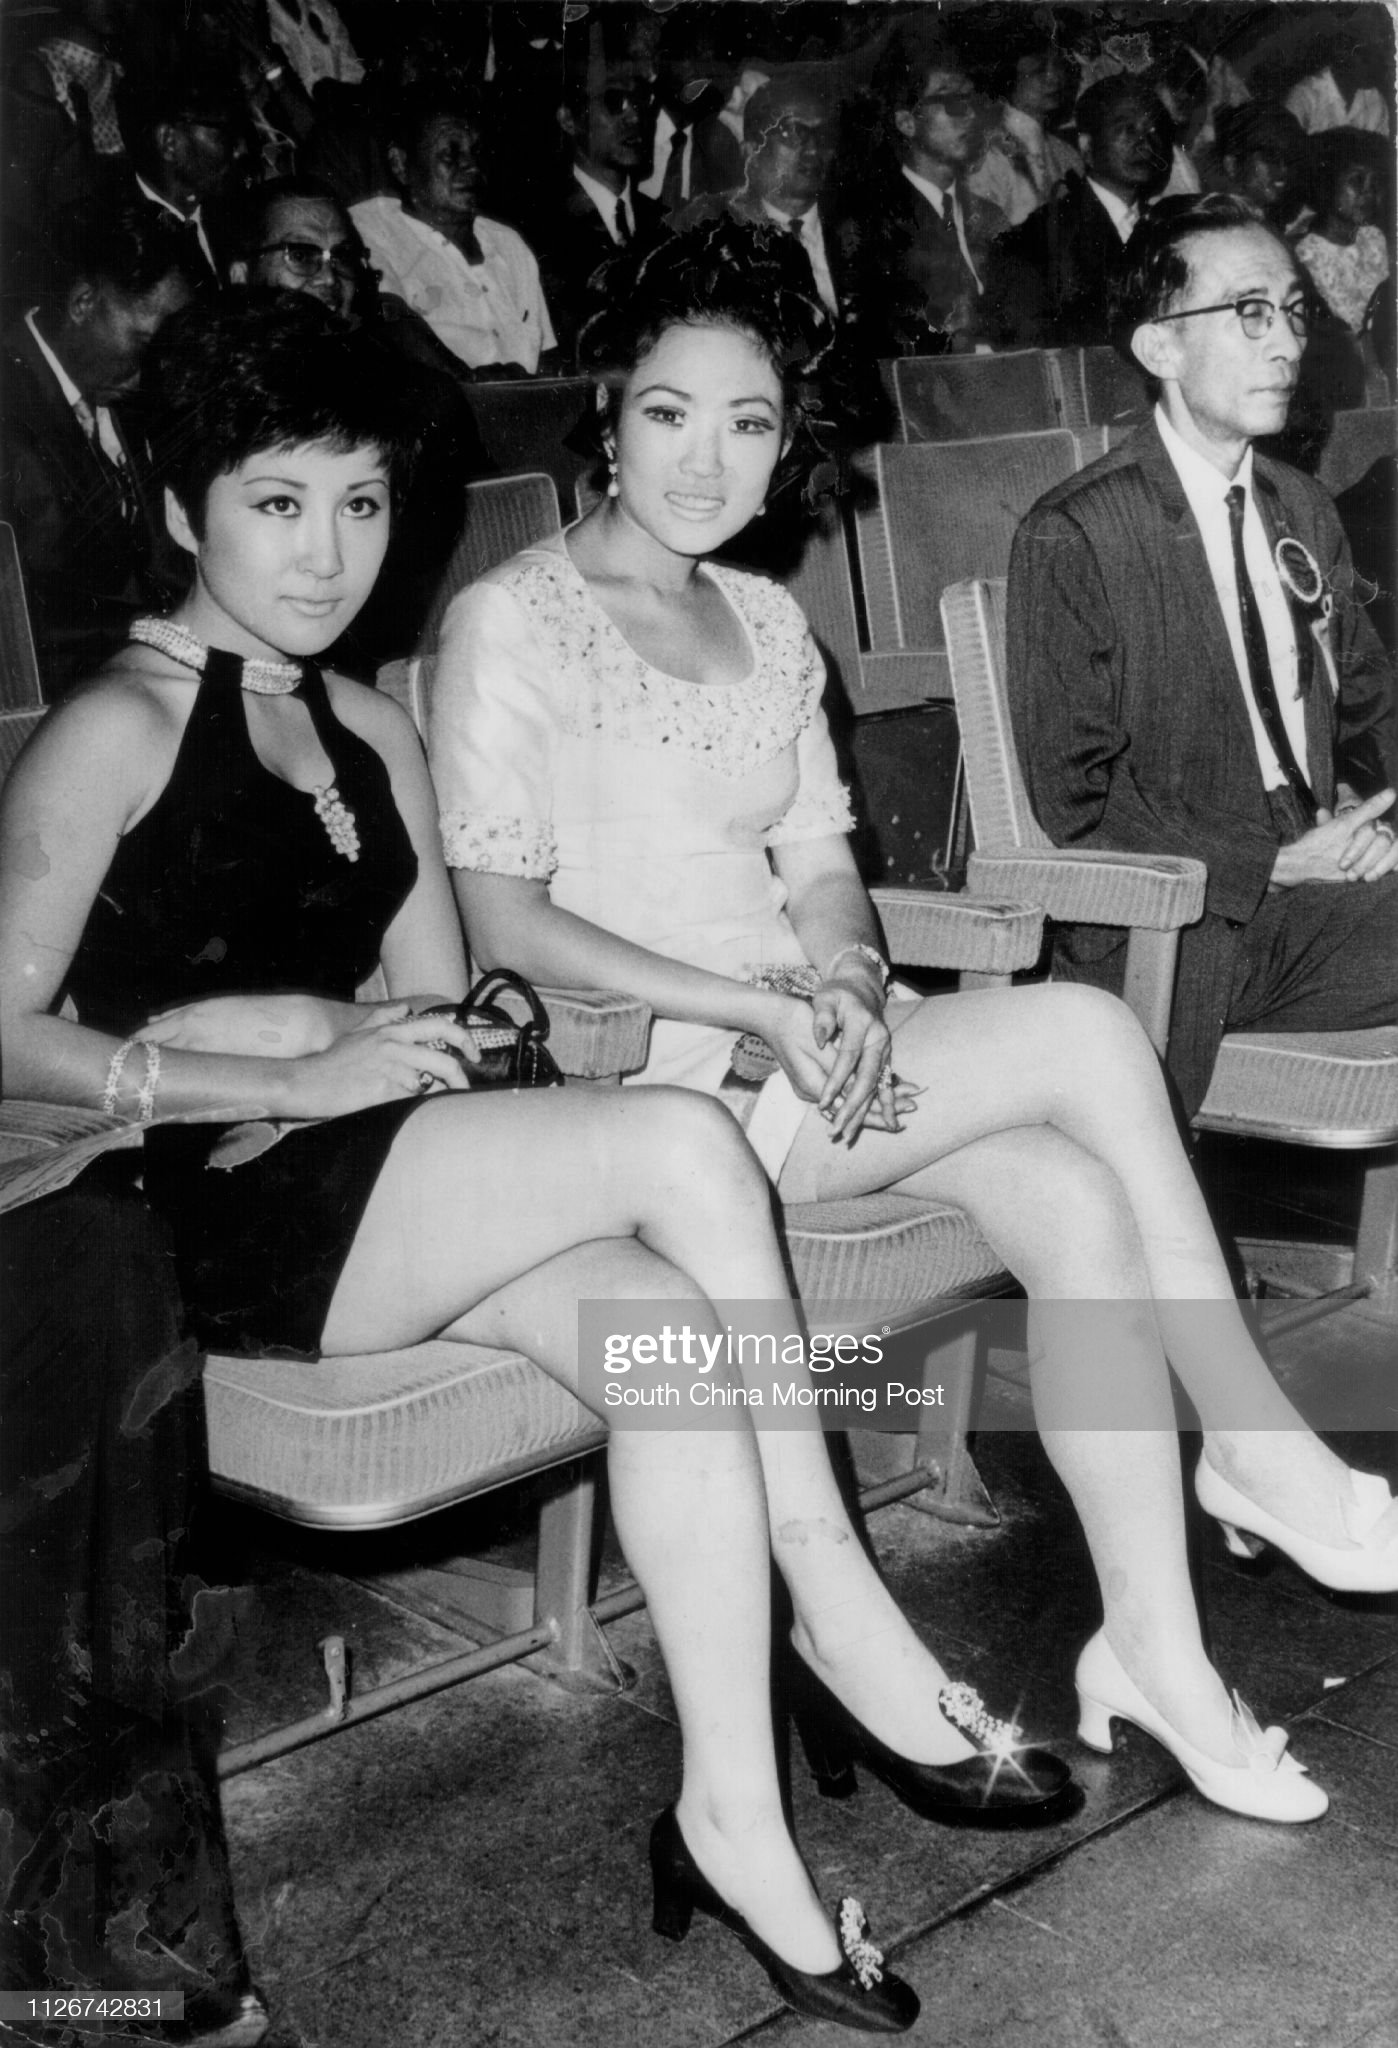 undated-photo-of-actresses-betty-ting-pe